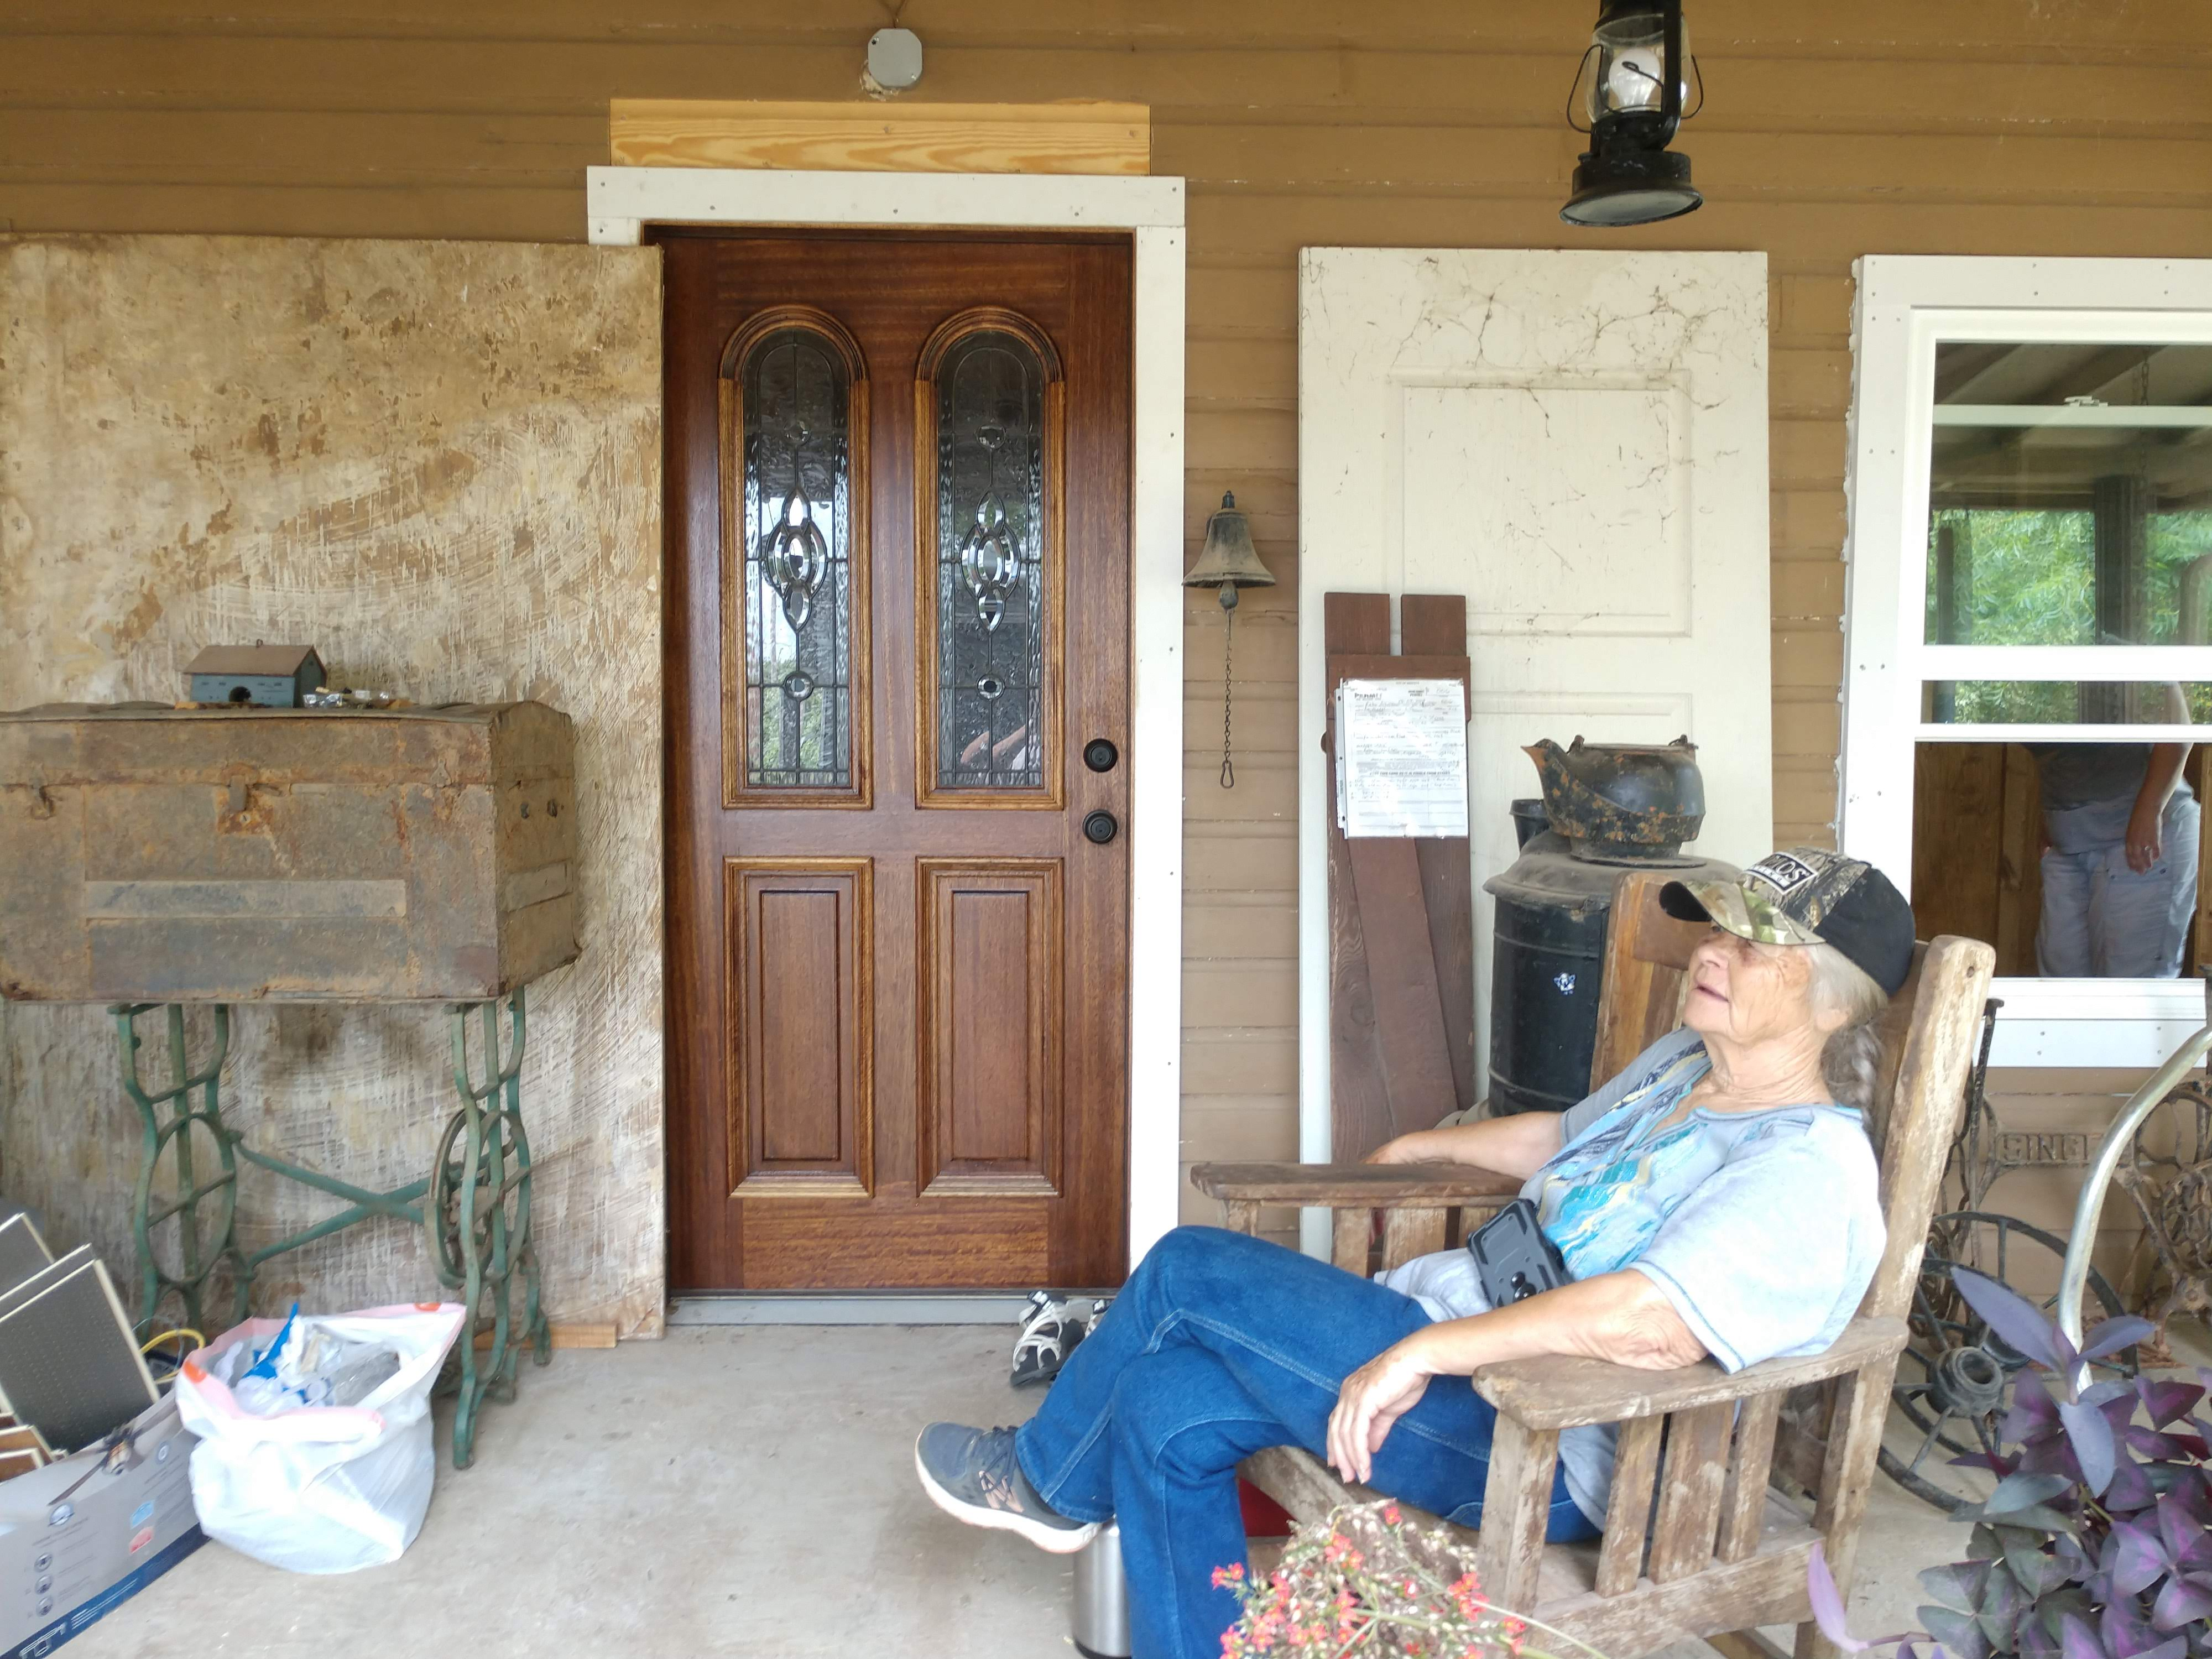 Ms Reba's Home Complete-Update-7-24-20